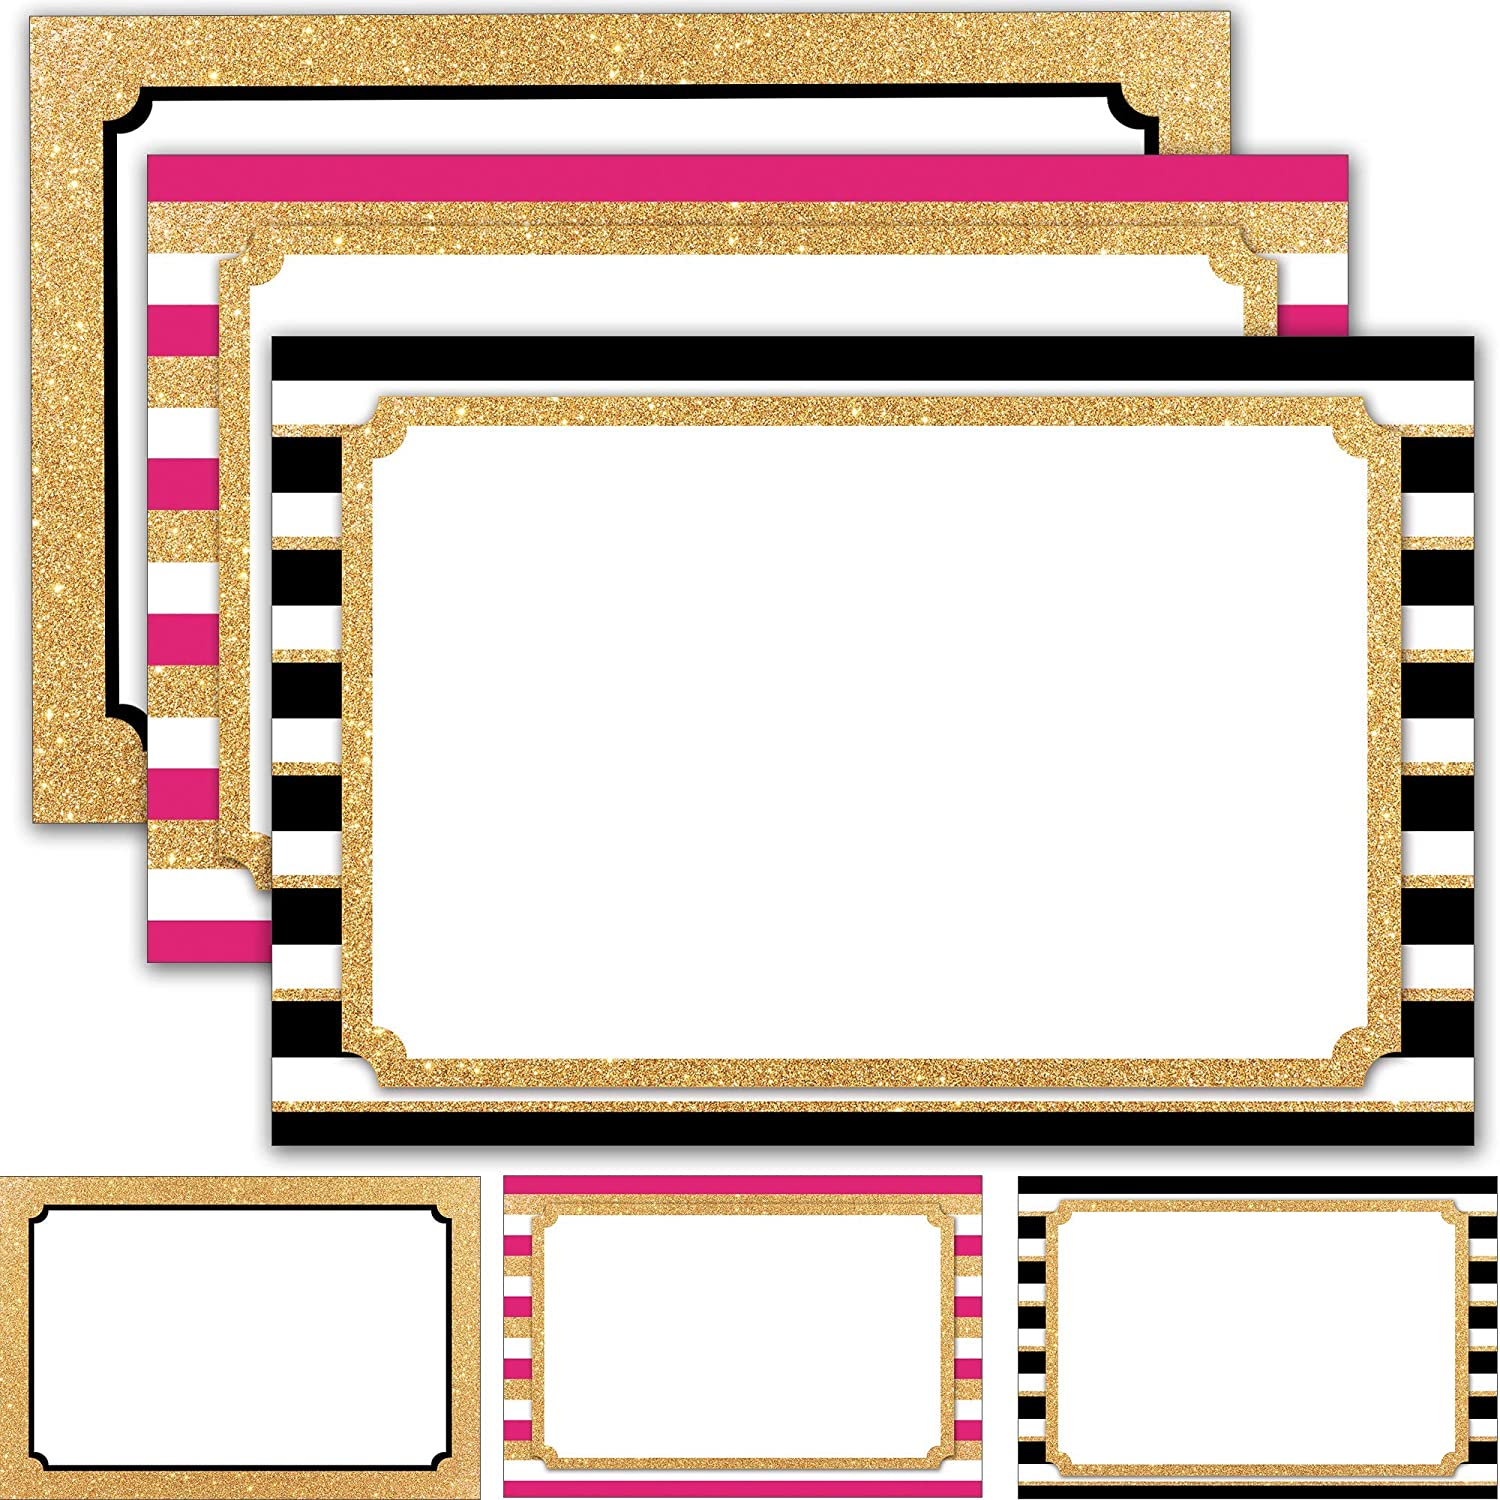 """60 Retail Signs 4"""" x 6"""" - Blank Sign Cards for Tags, Labels, Store Display Signage - Faux Glitter Gold and Neon Pink Theme"""